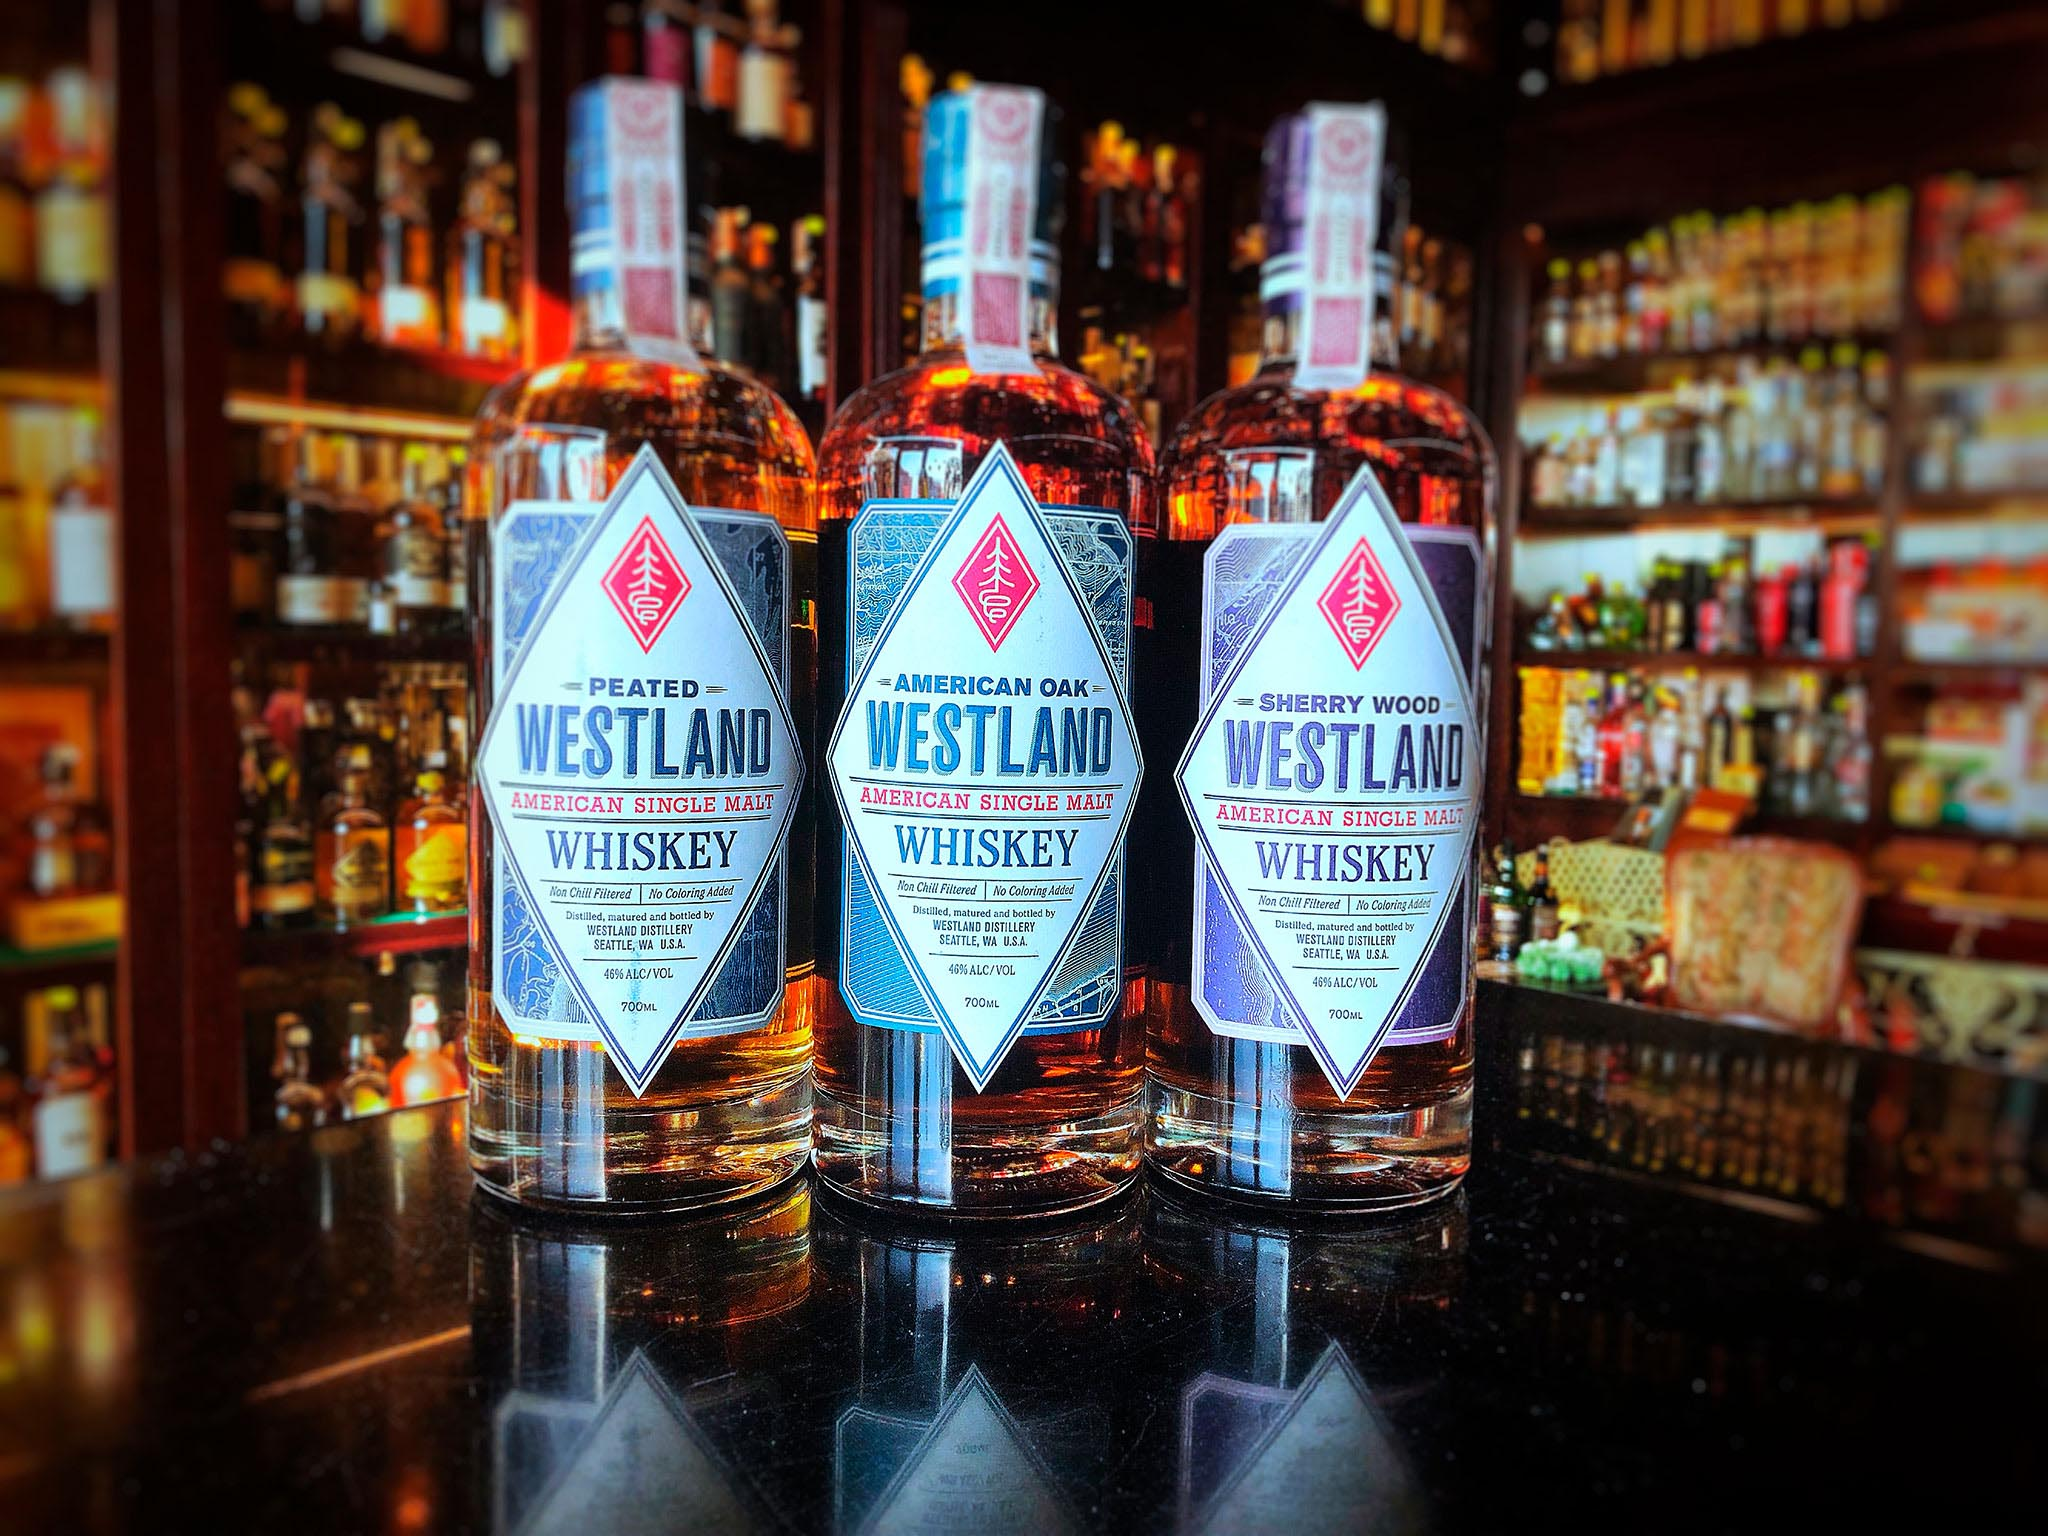 Westland single malt whiskey!